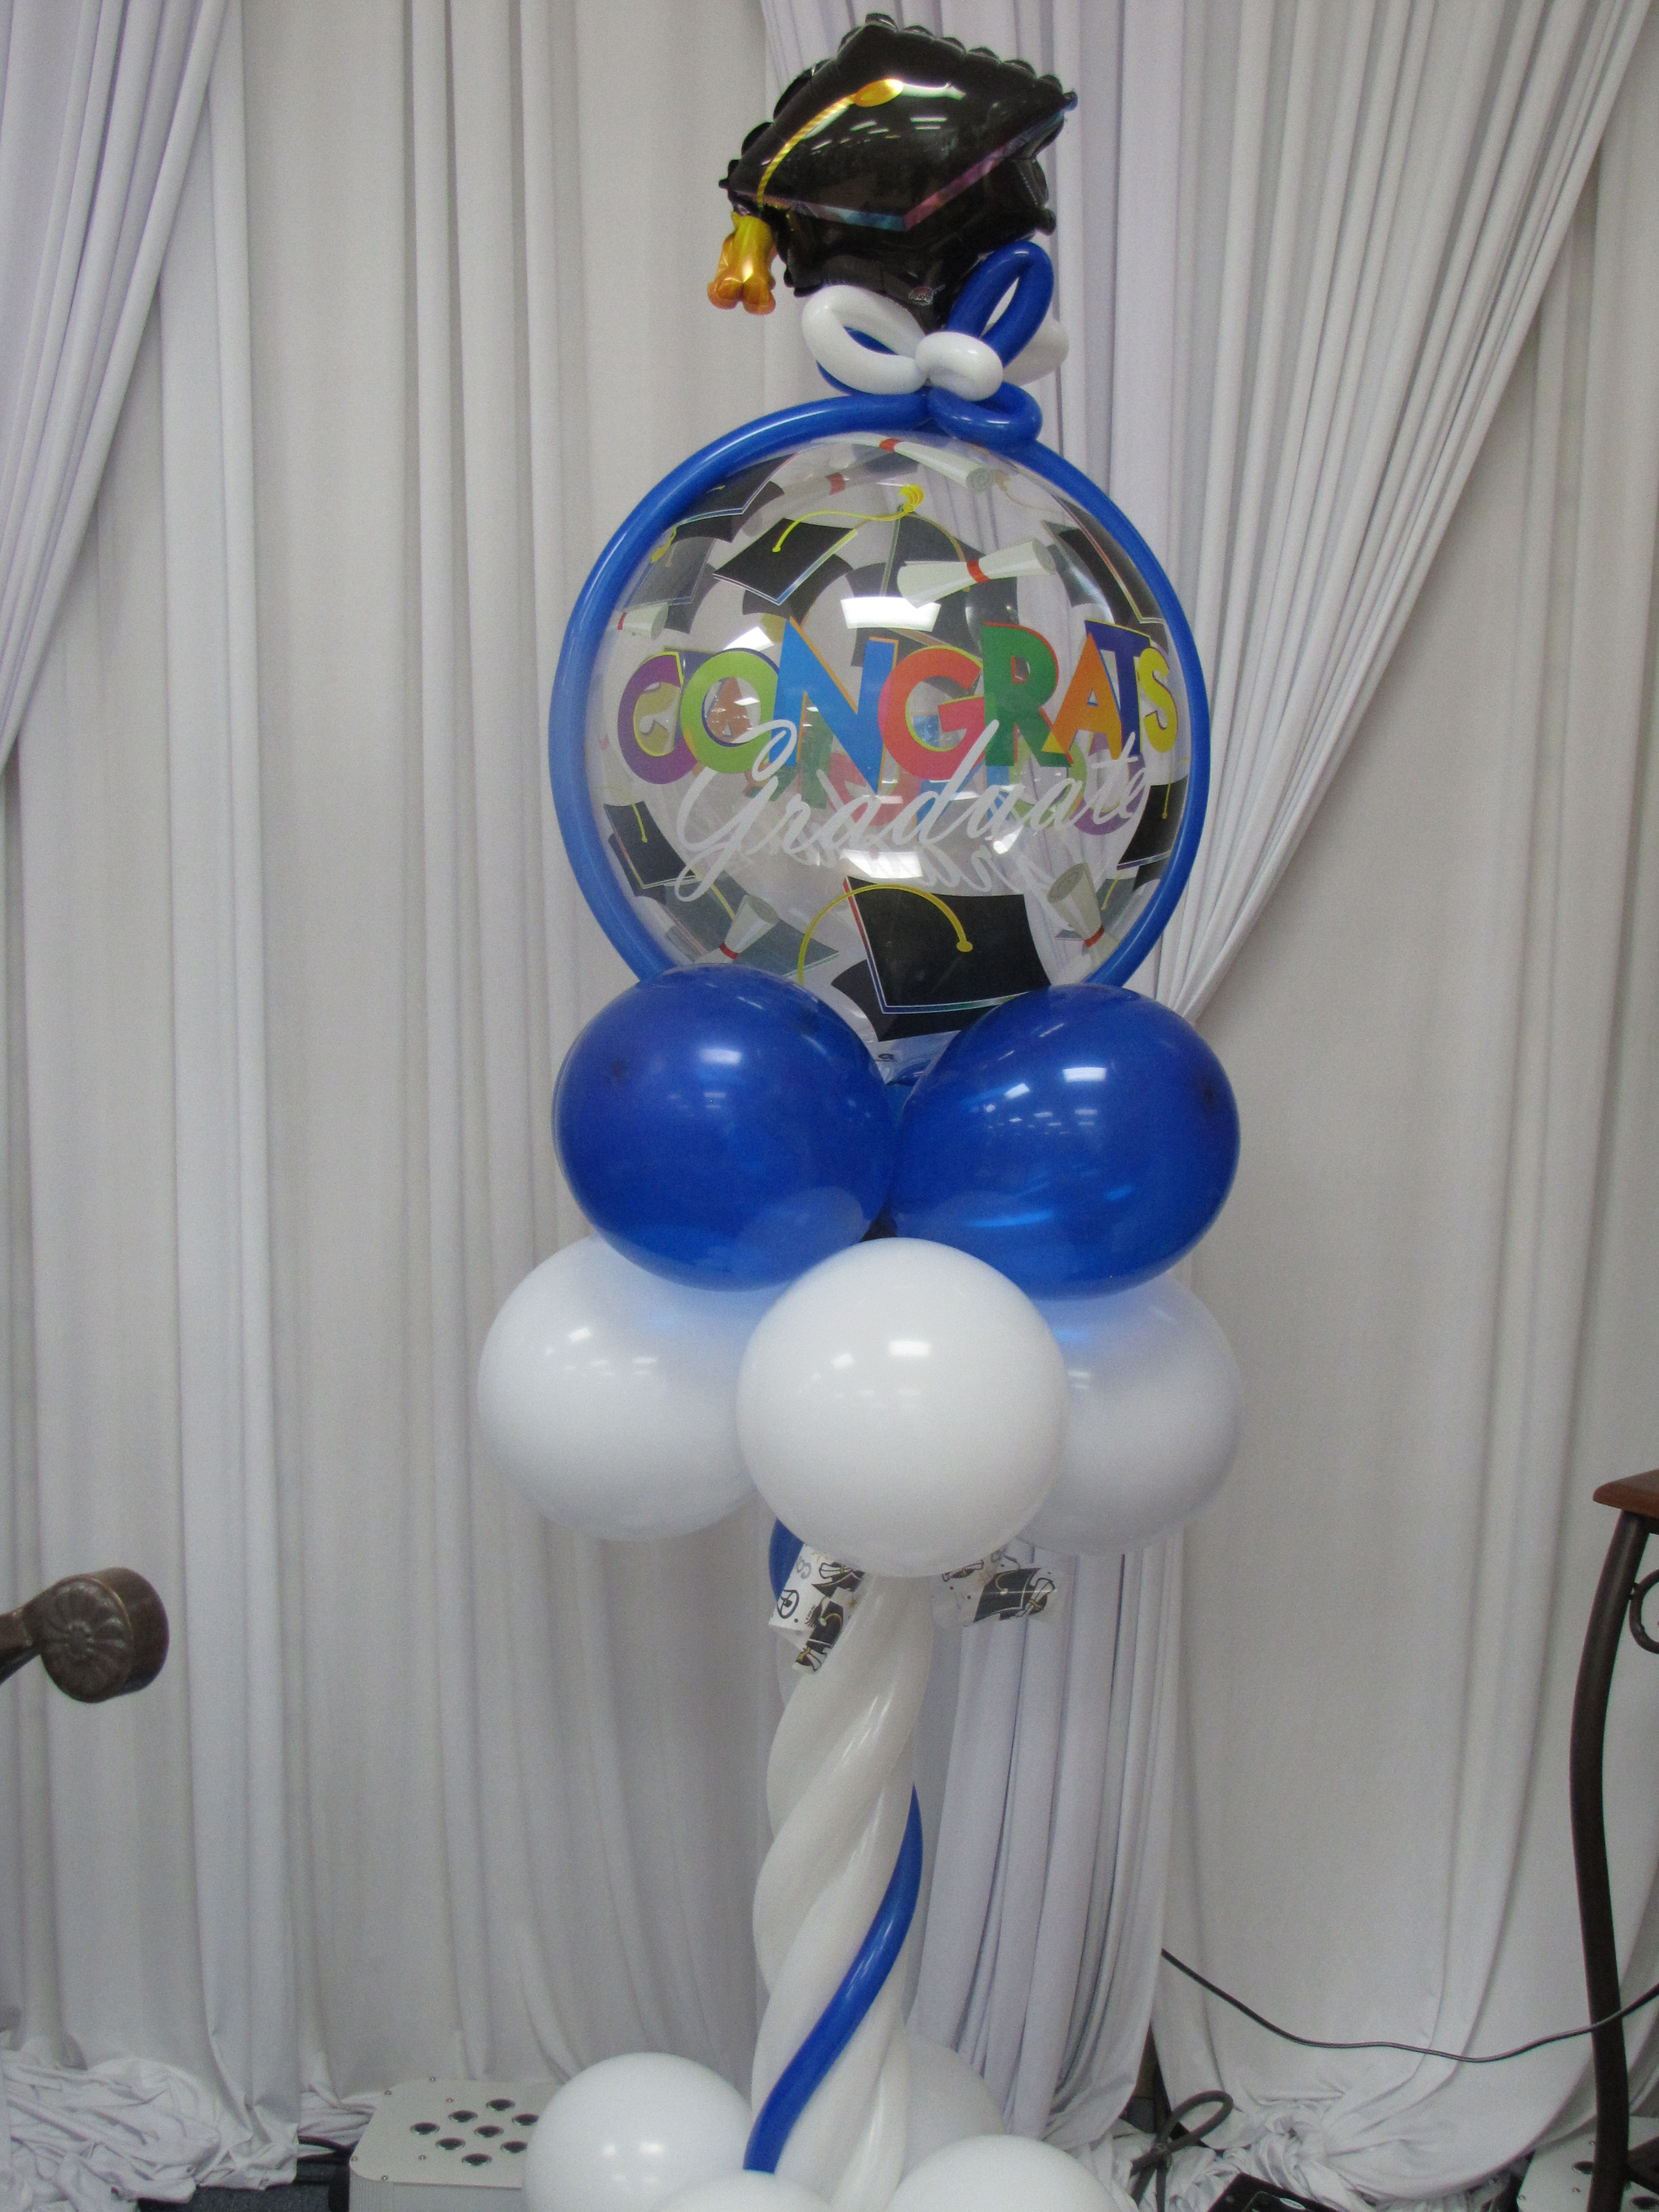 Graduation season balloon decor amytheballoonlady for Balloon decoration ideas for graduation